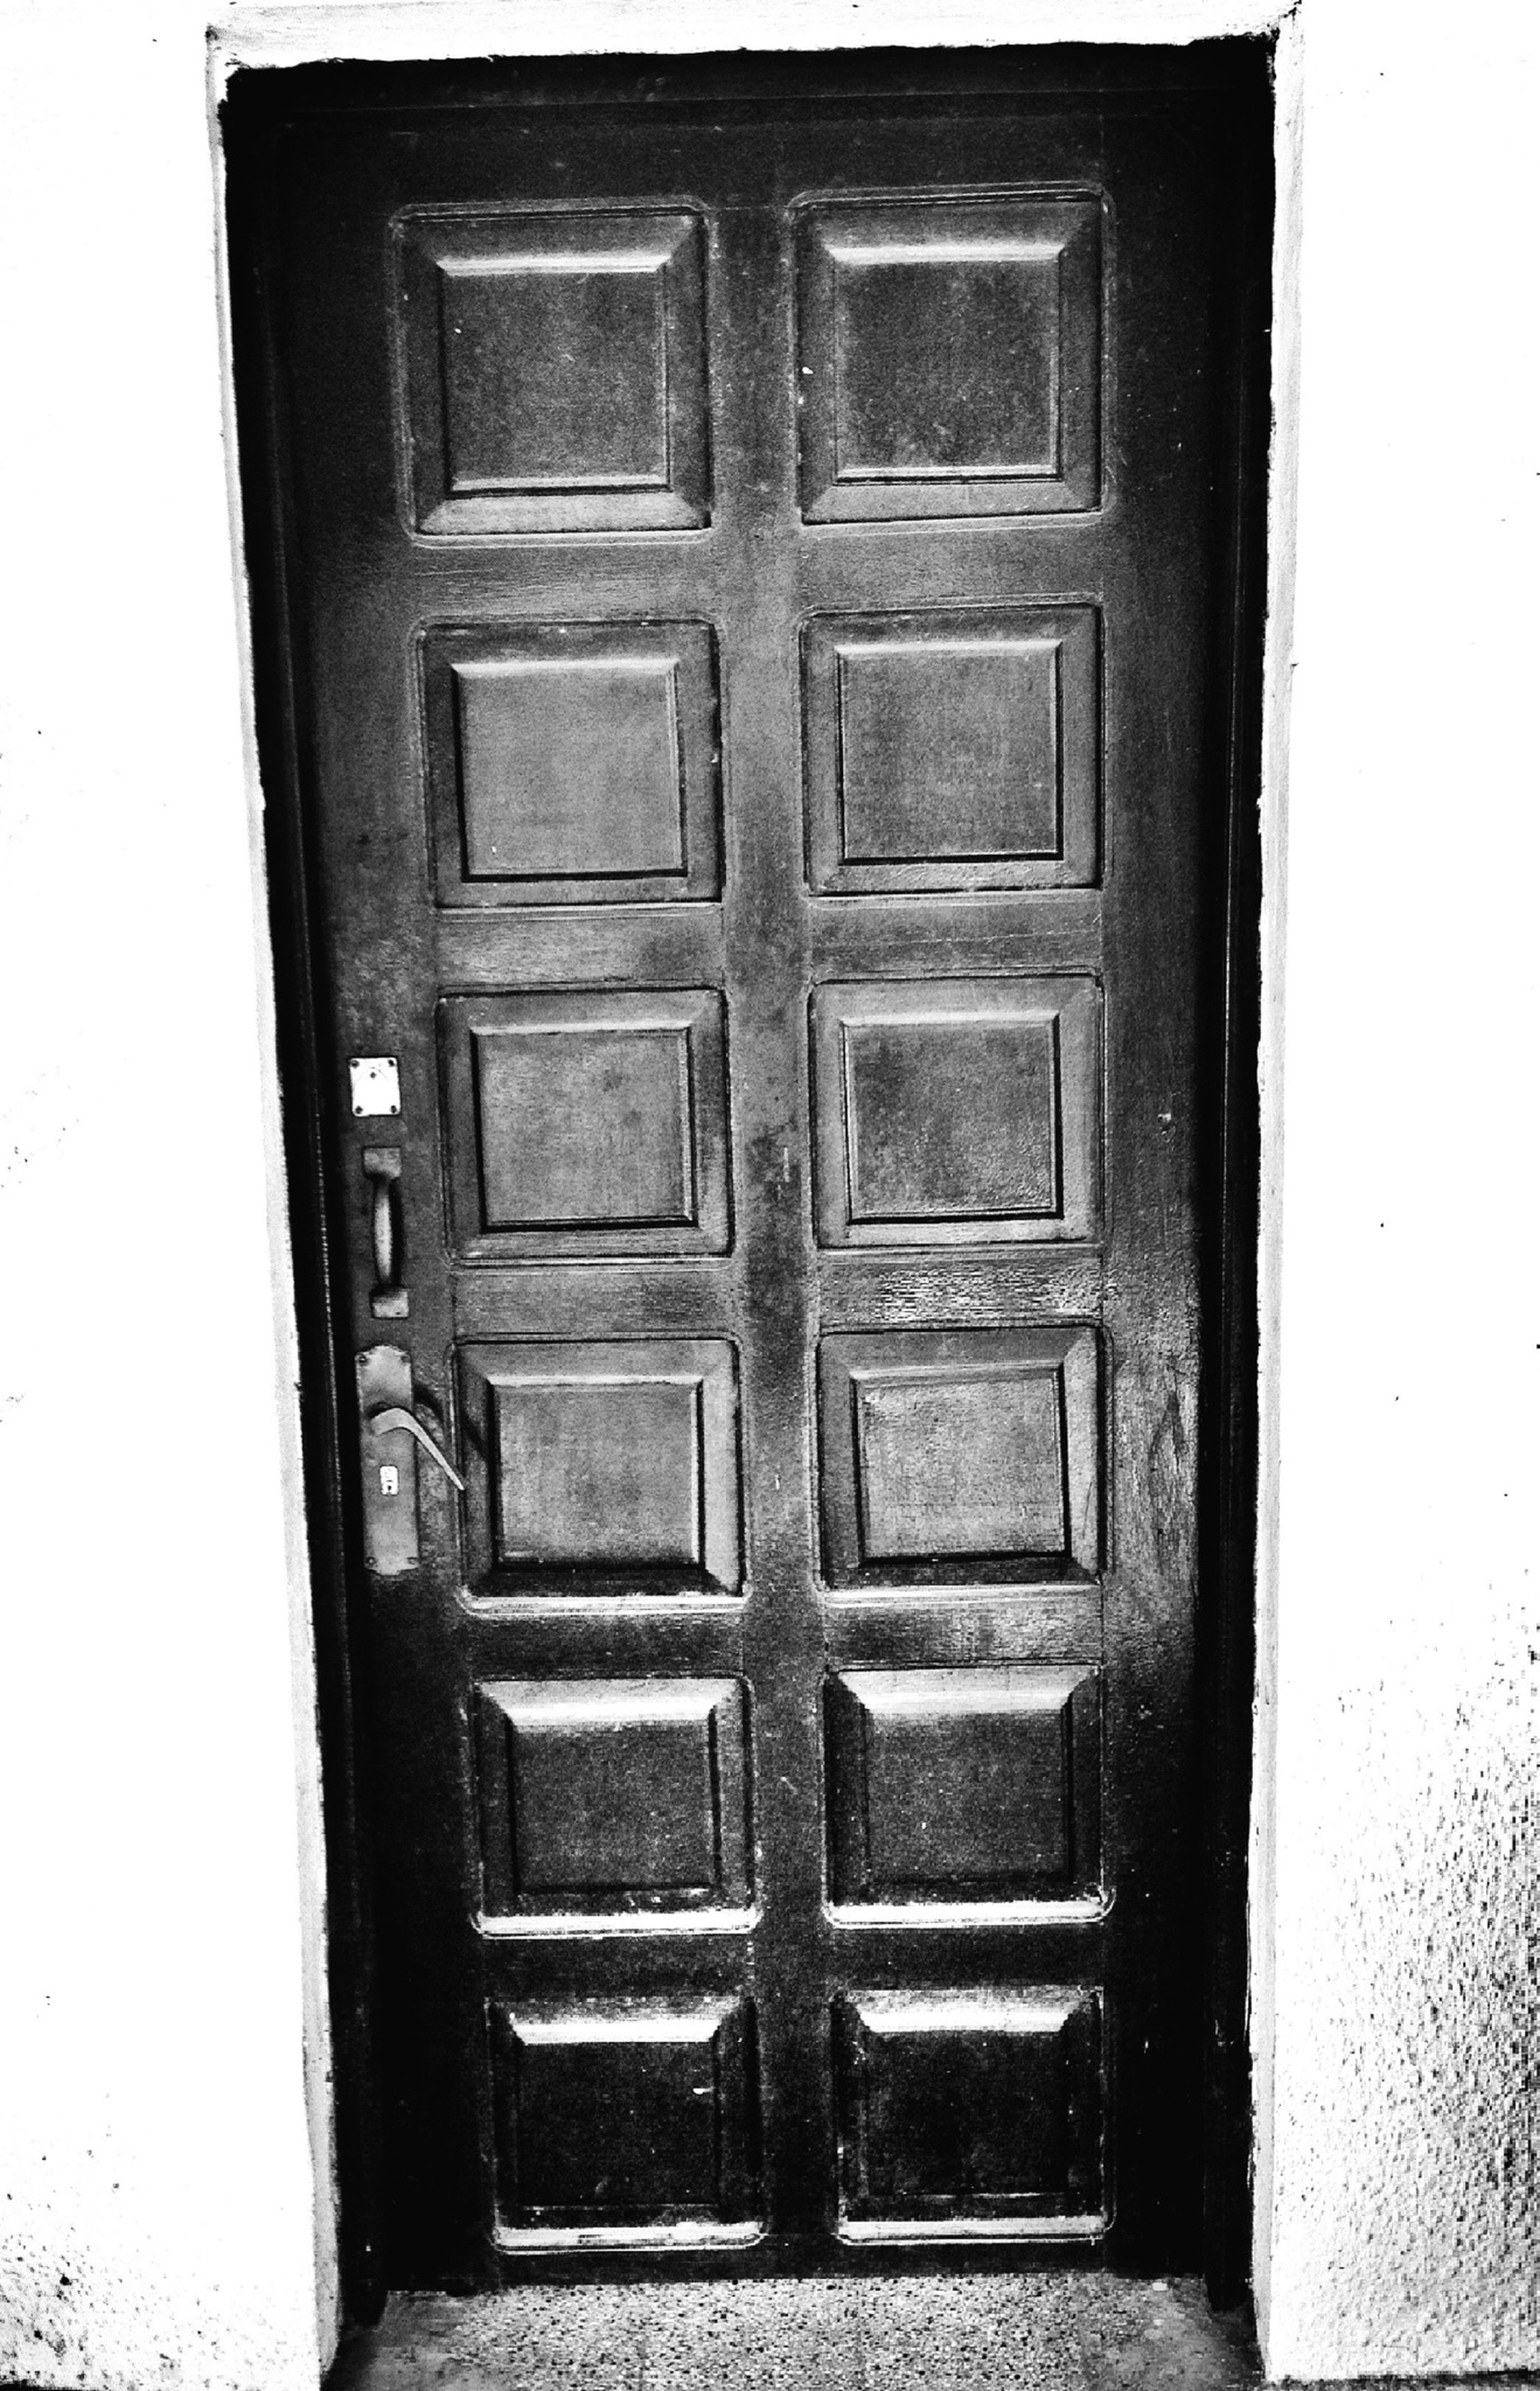 door, closed, built structure, building exterior, architecture, safety, window, entrance, wood - material, protection, house, security, old, wall - building feature, close-up, wooden, doorway, no people, closed door, pattern